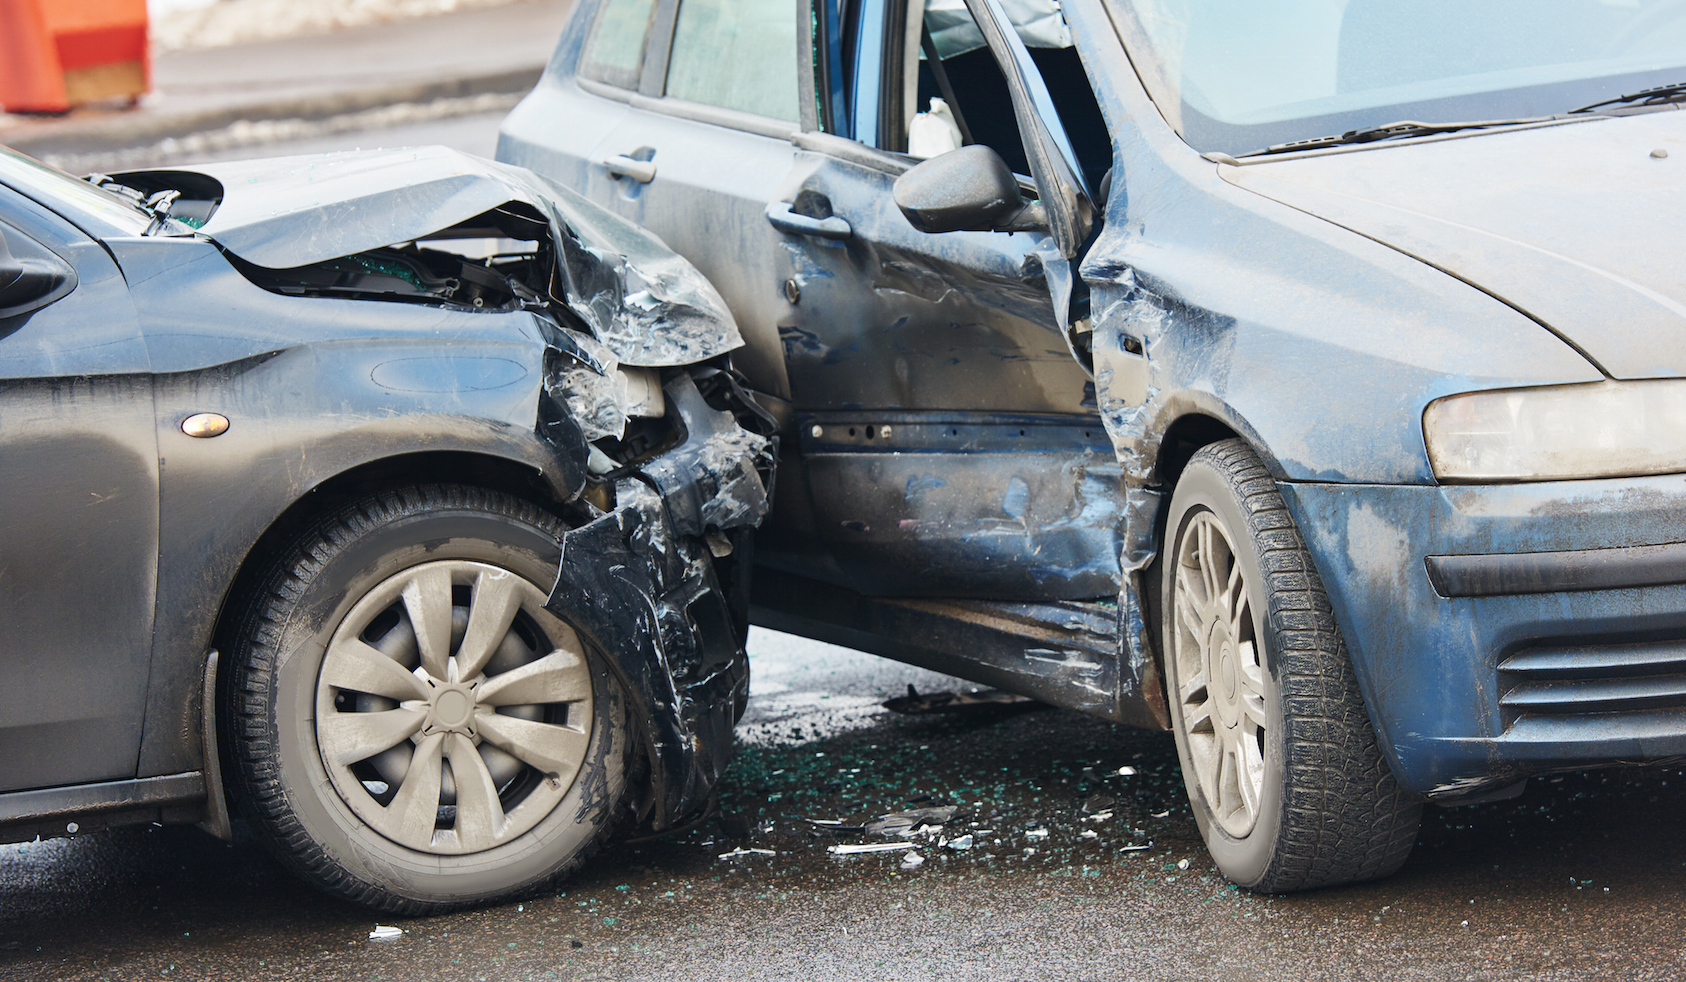 St louis and Illinois personal injury